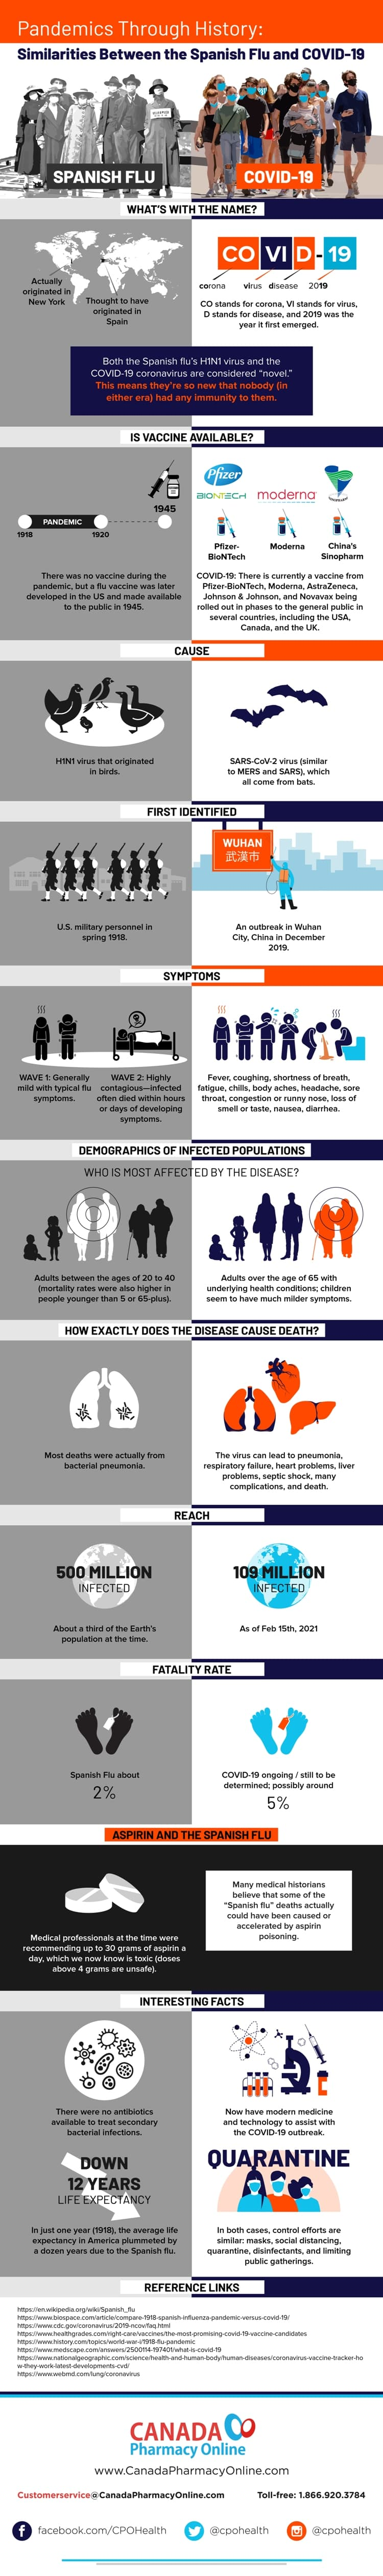 Similarities Between the Spanish Flu and COVID-19 - Infographic